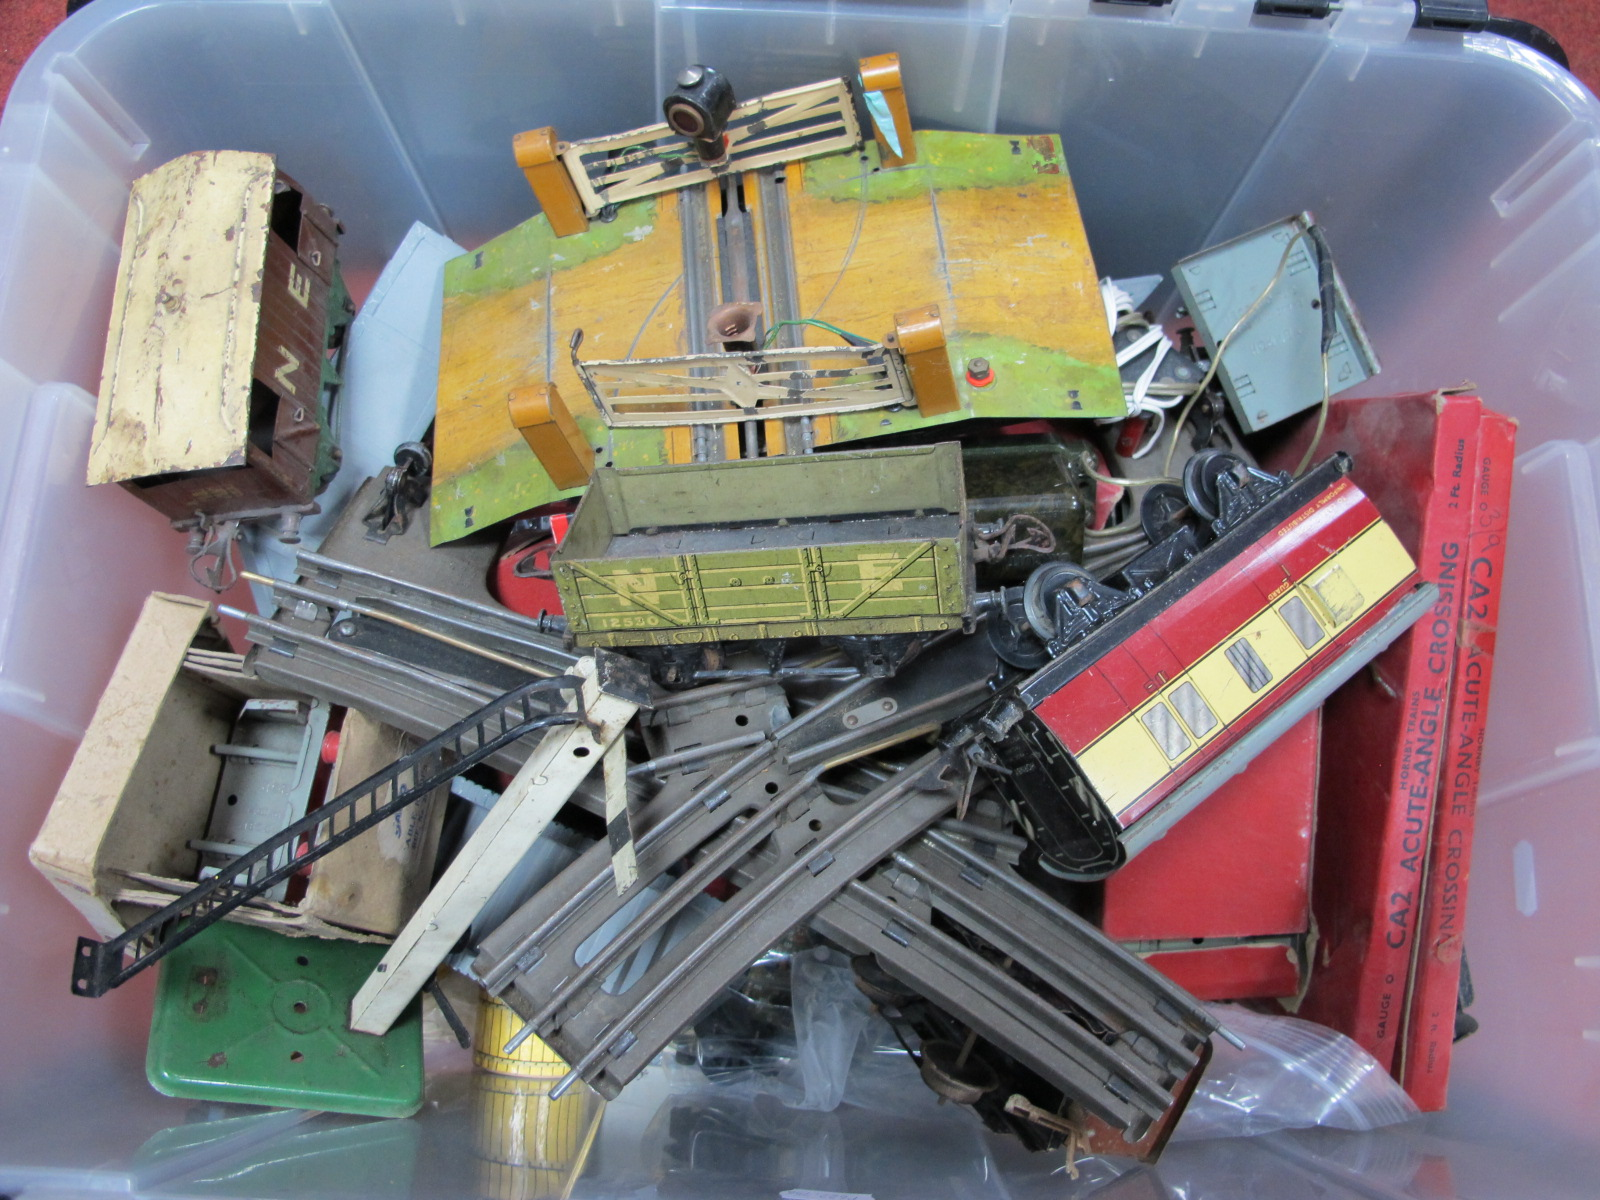 Lot 180 - A Quantity of 'O' Gauge/7mm Rolling Stock, Spares and Accessories, by Hornby, Peco and others,